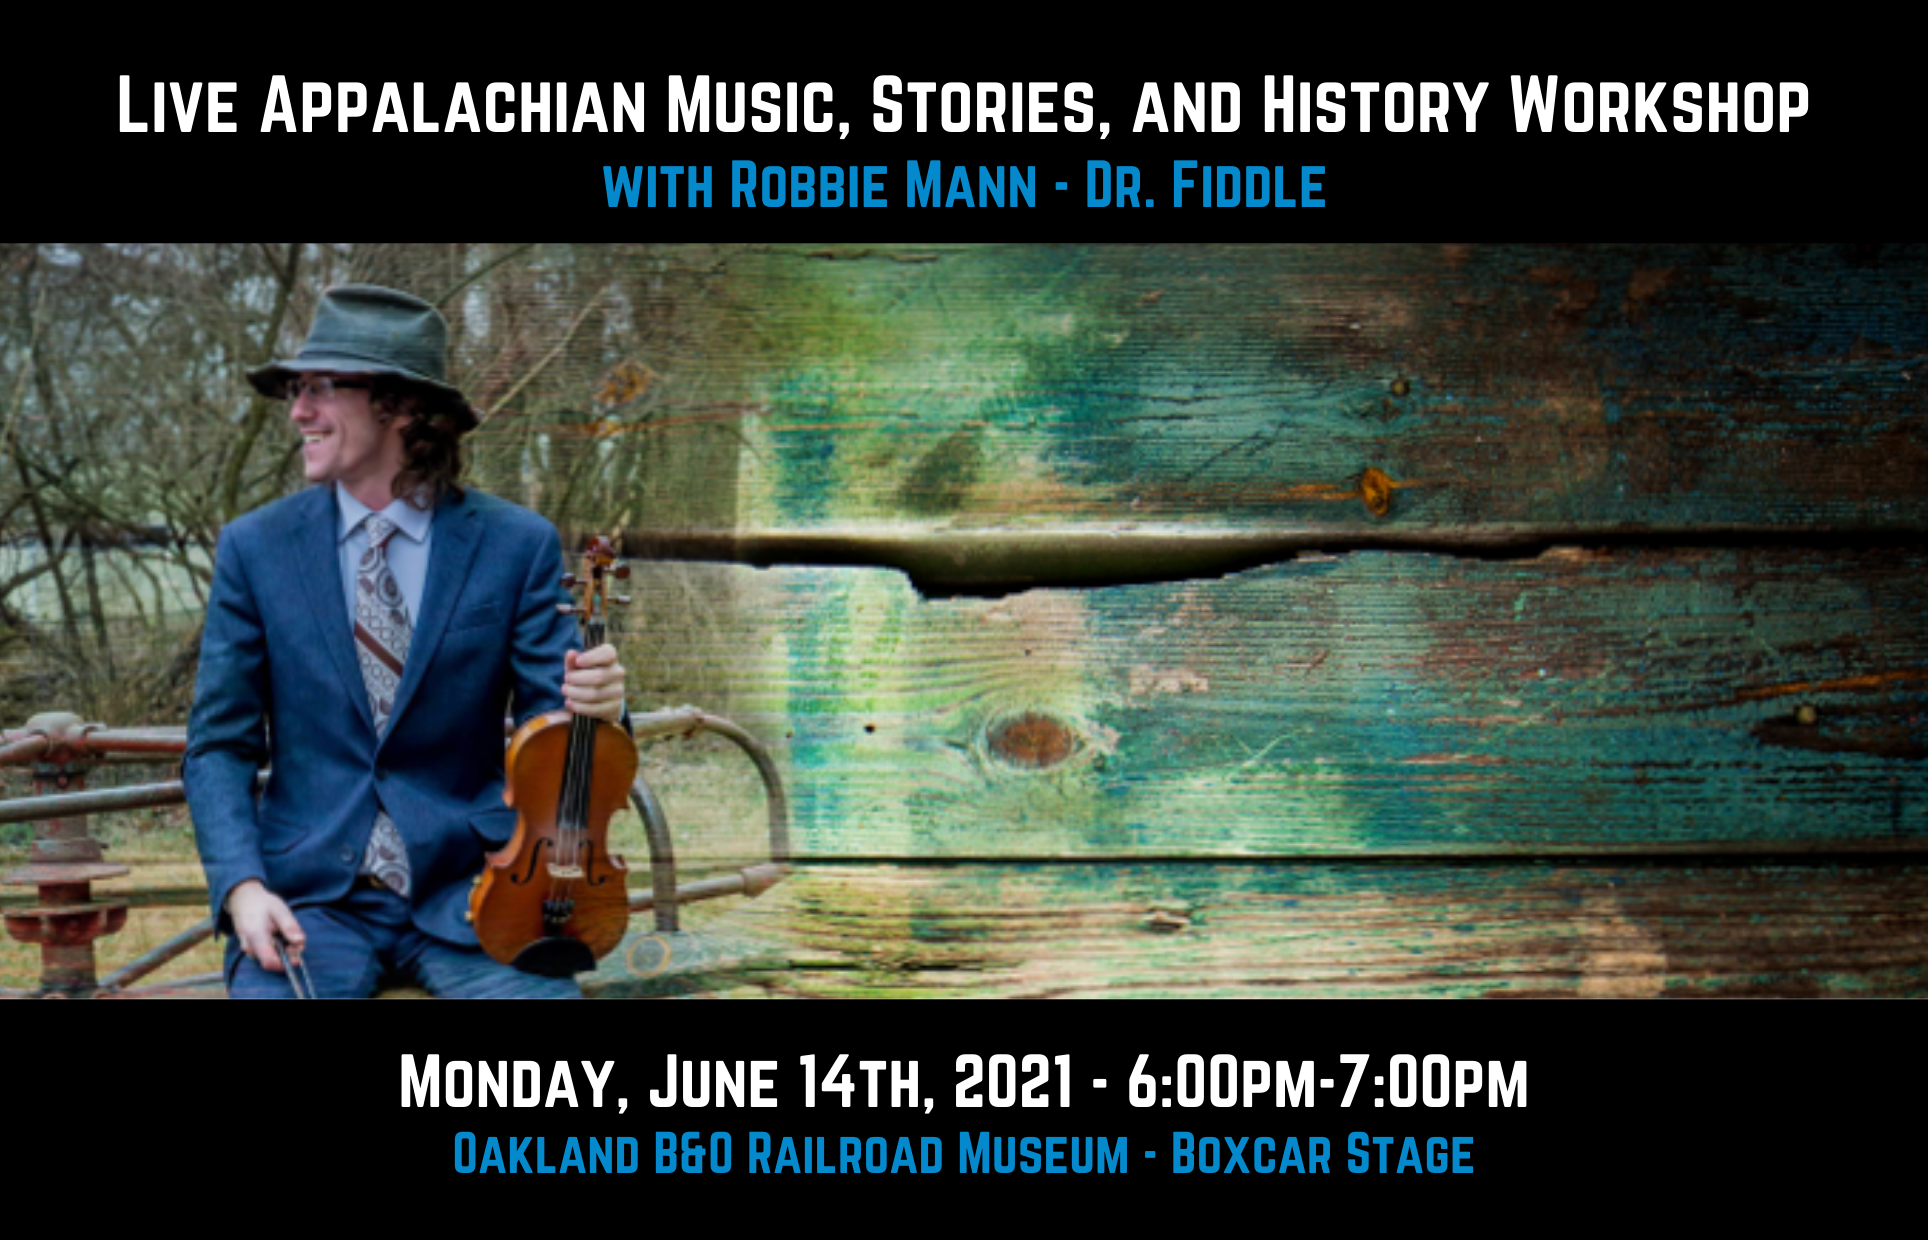 Live Appalachian Music, Stories, and History Workshop Robbie Mann